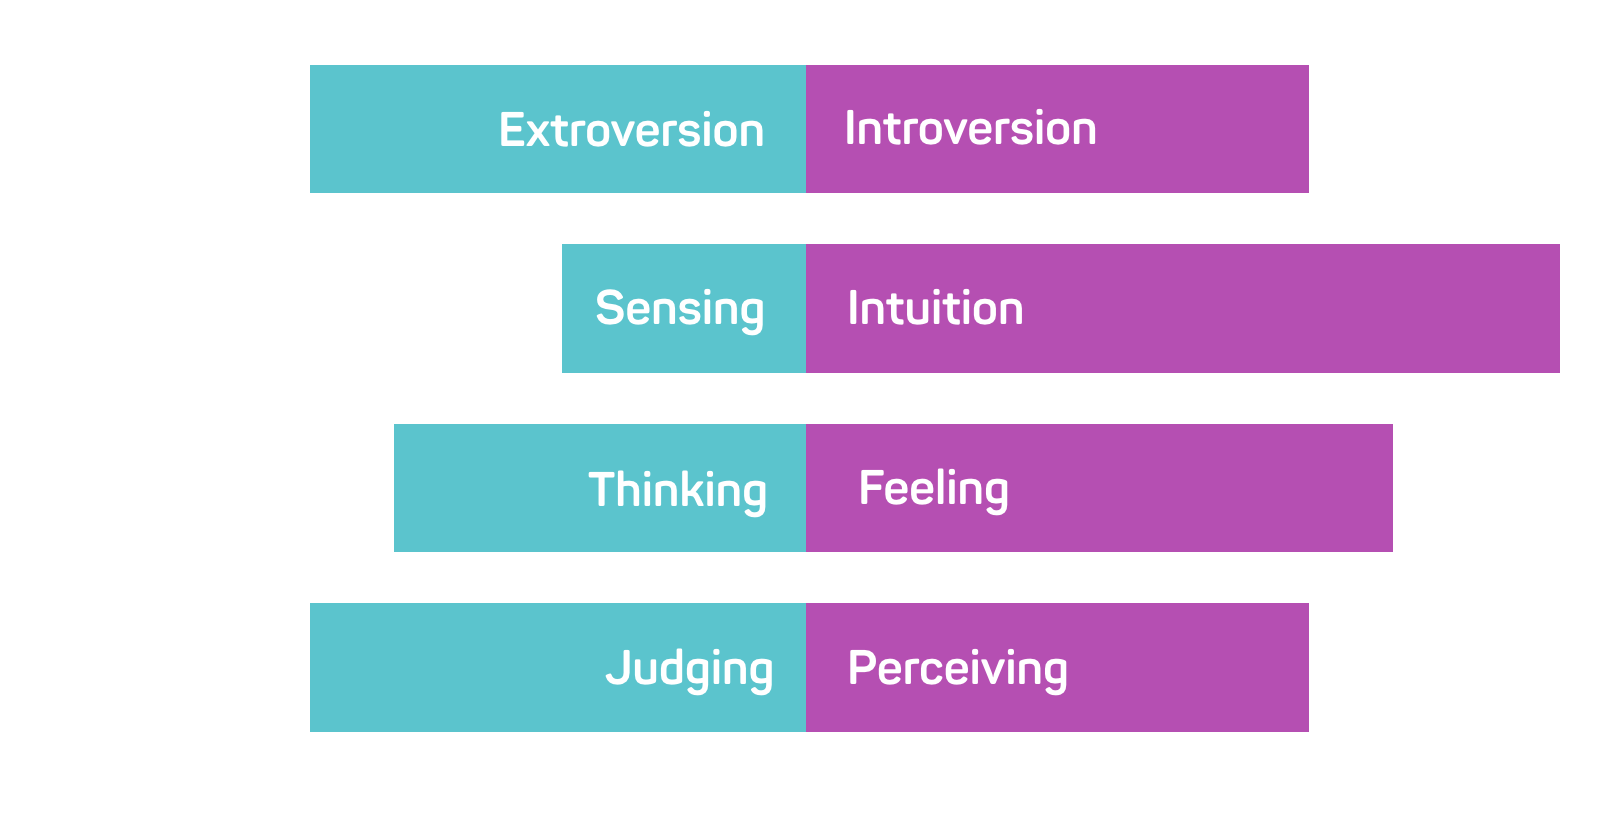 A Meyers Briggs personality chart showing where someone falls in each area of personality.